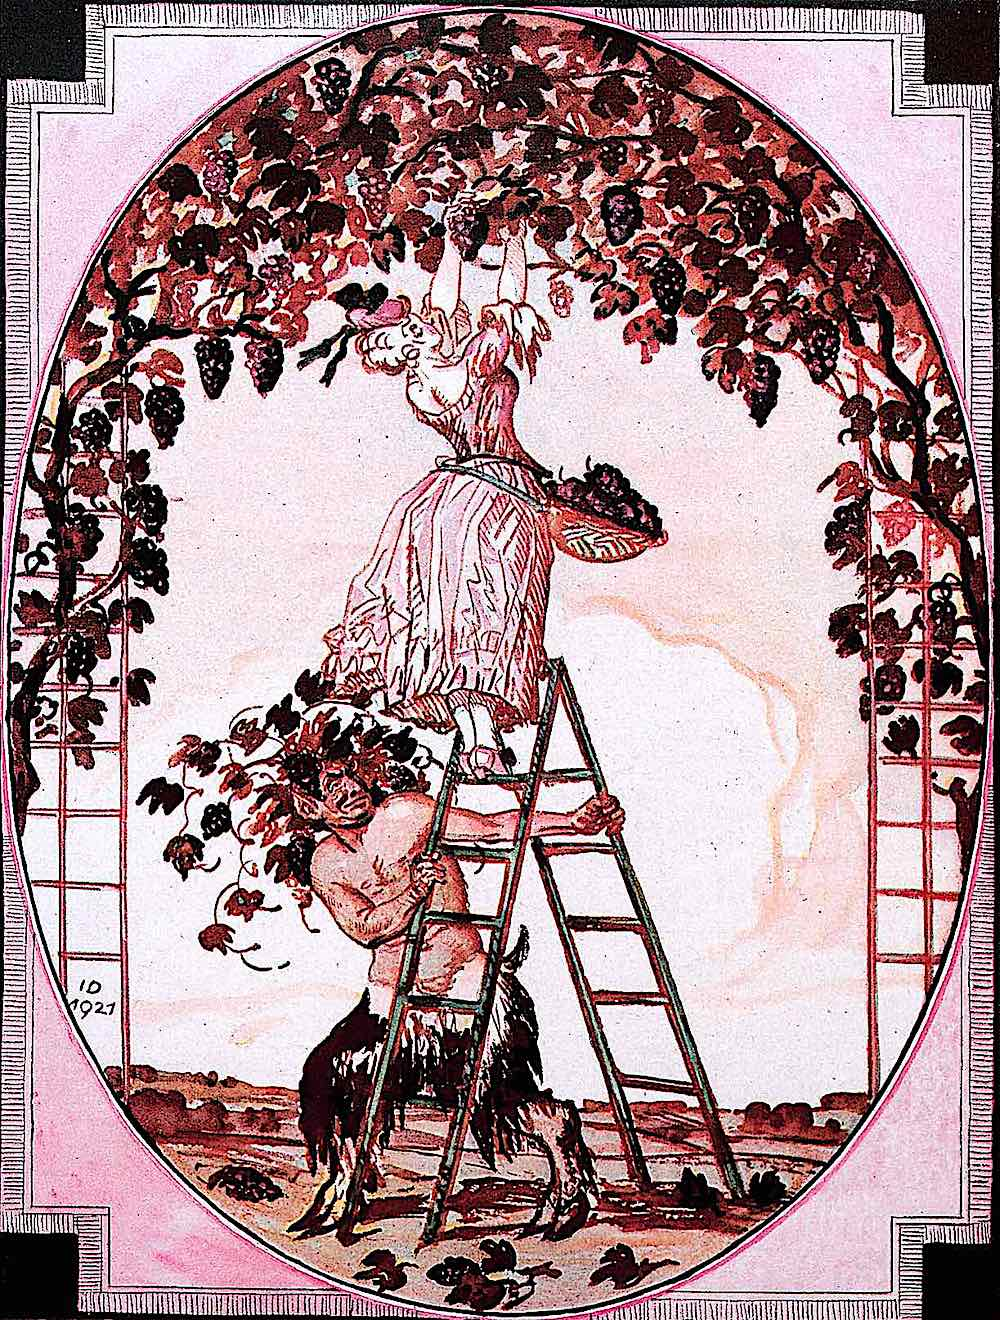 a Julius Diez 1927 illustration of a satyr steading a ladder and peeping up a woman's skirt